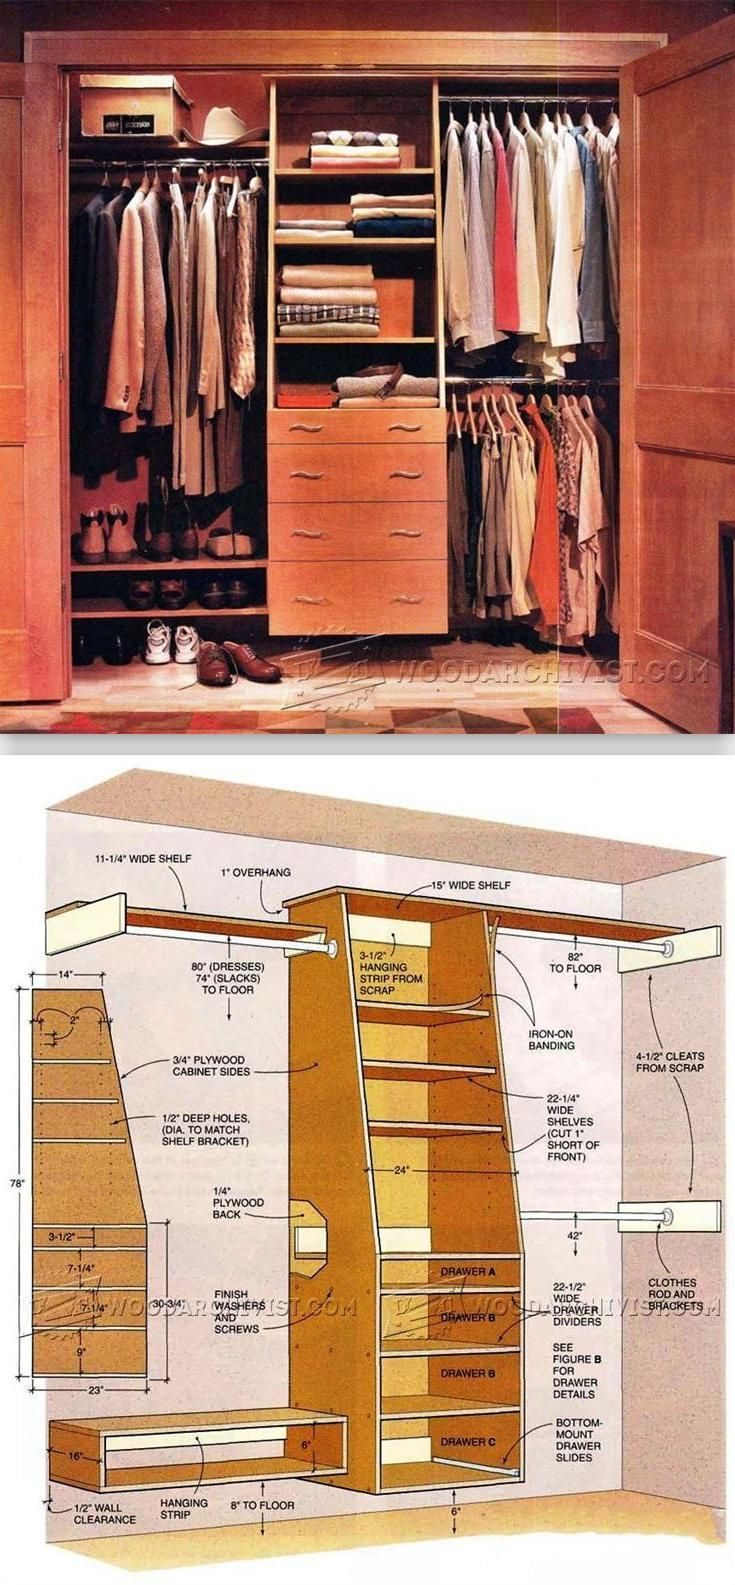 Built In Closet Plans - Furniture Plans and Projects | WoodArchivist.com